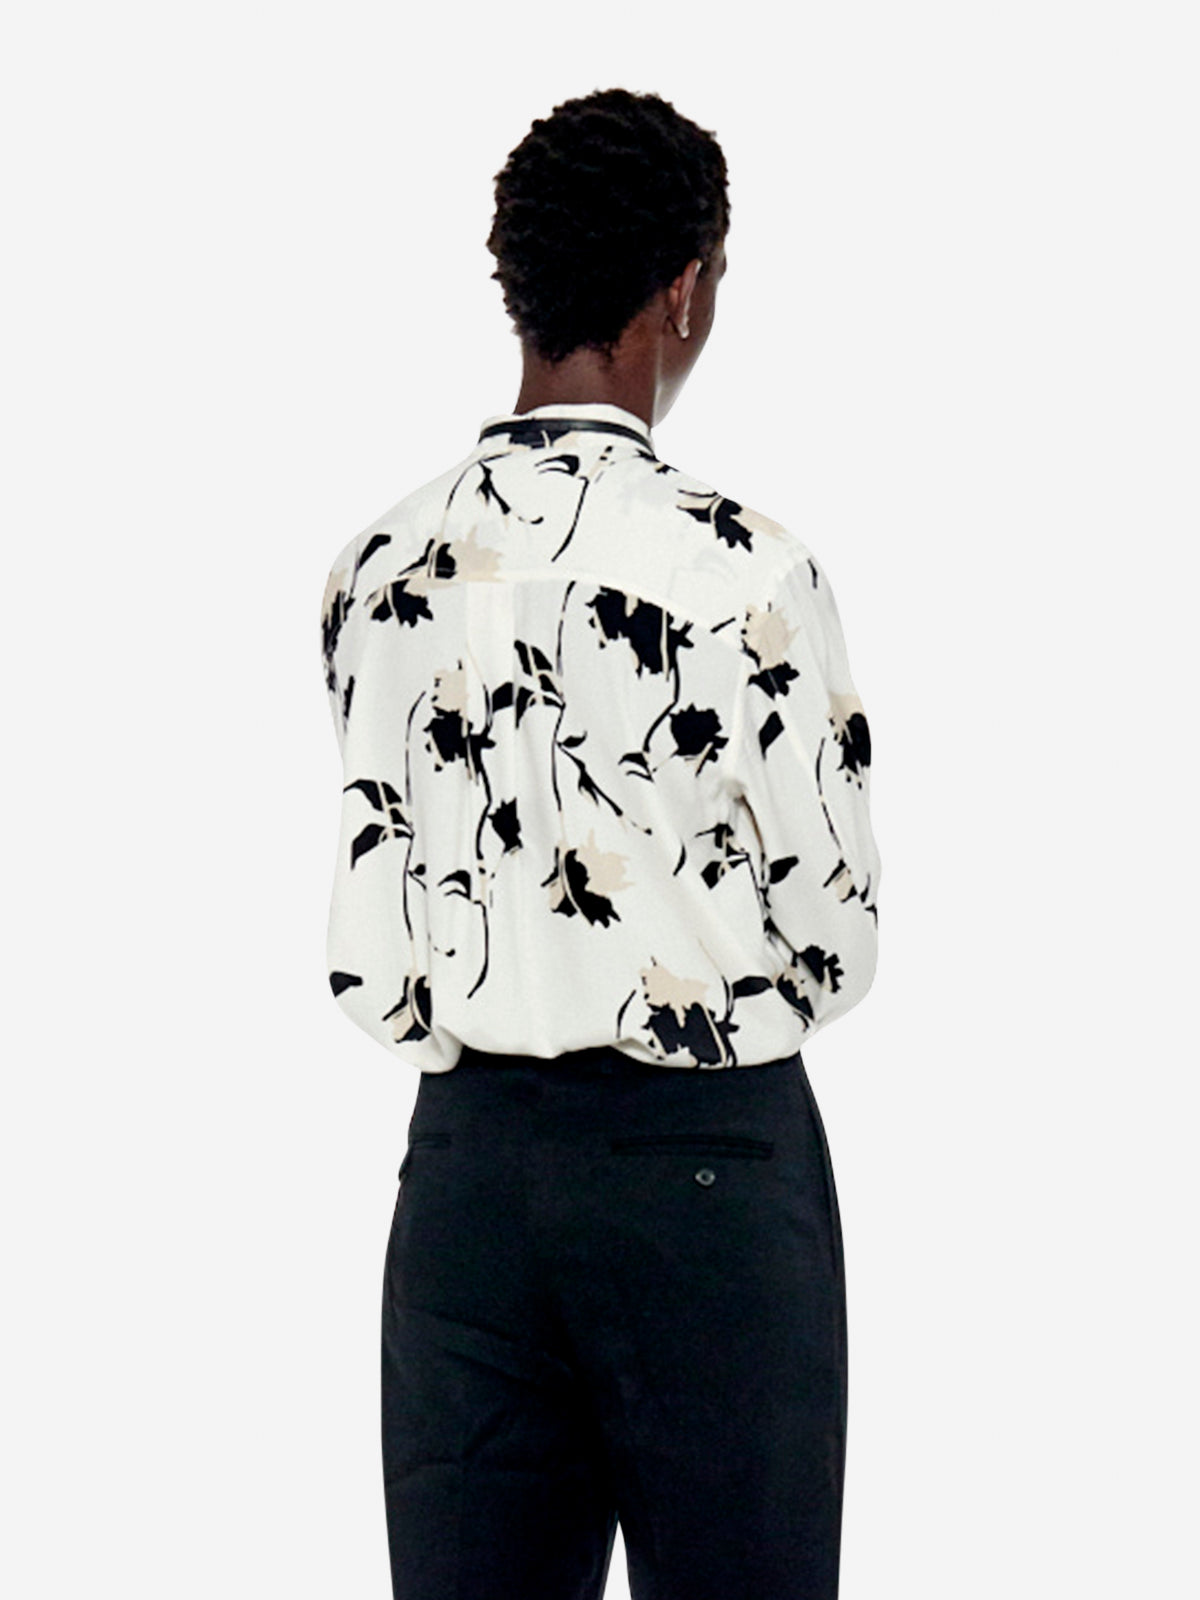 Retro abstract floral print shirt